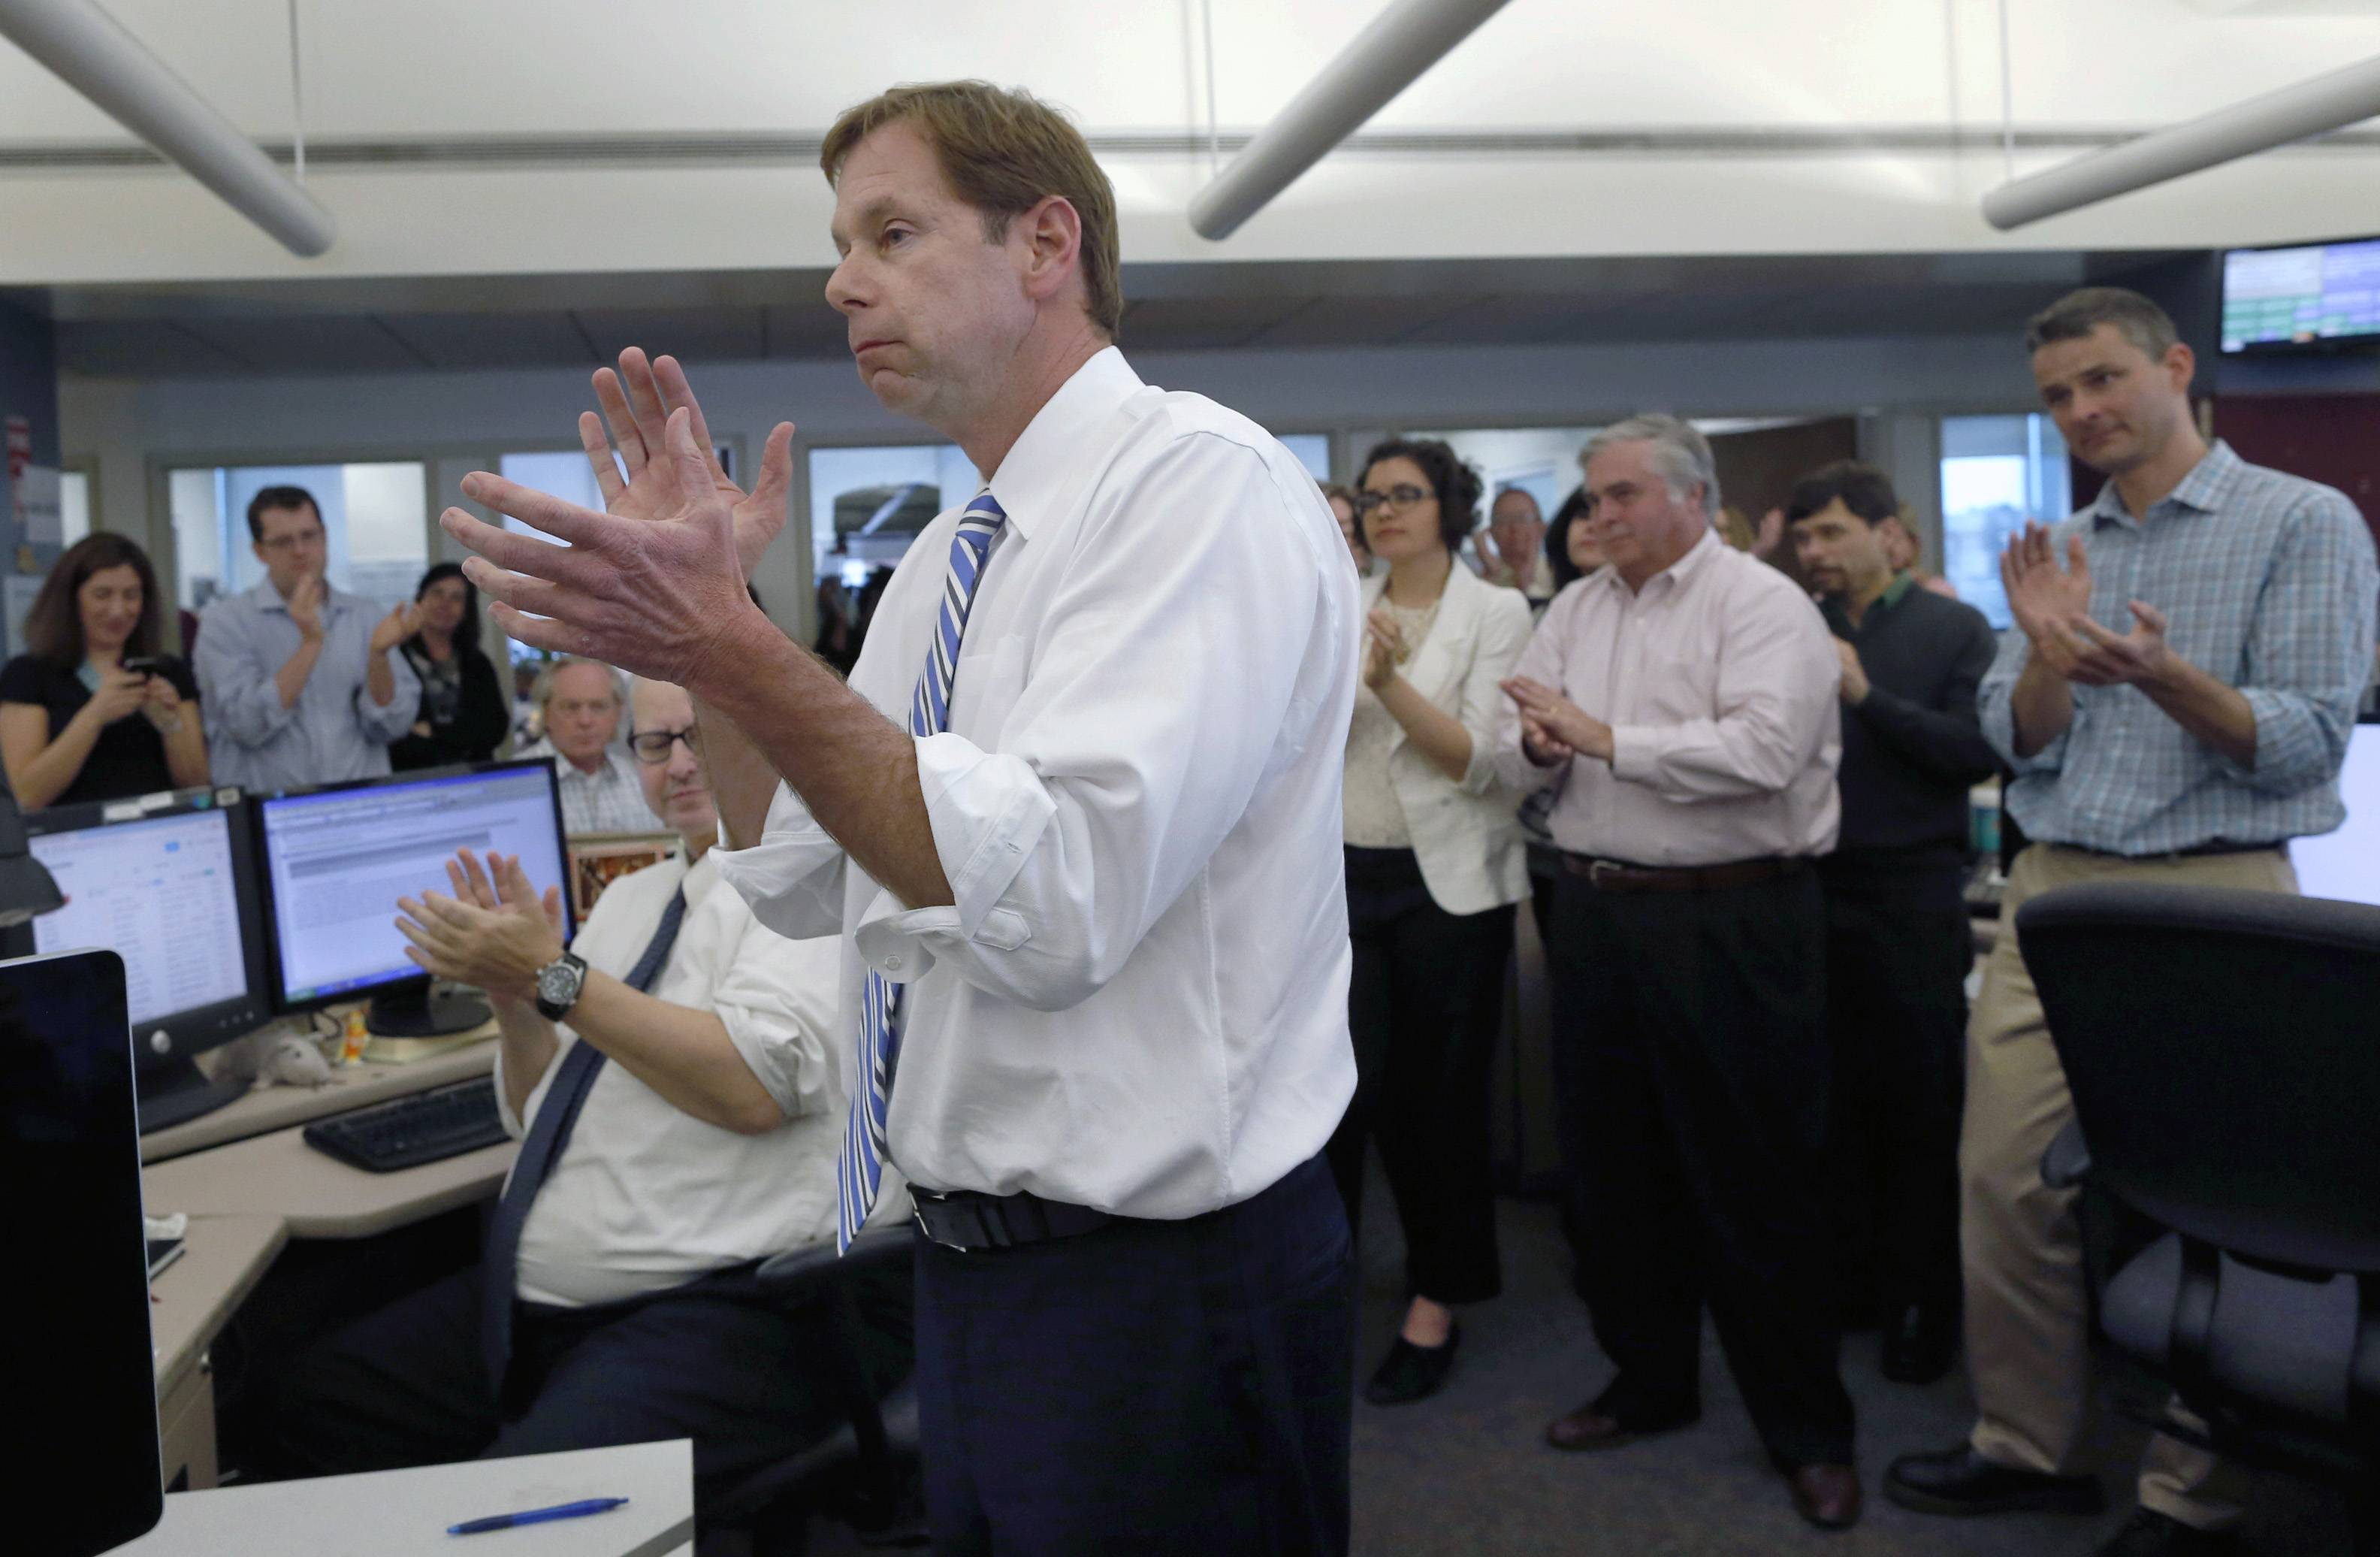 Editor Brian McGrory and members of the newsroom applaud after The Boston Globe was awarded the Pulitzer Prize for breaking news for coverage of the 2013 Boston Marathon bombings